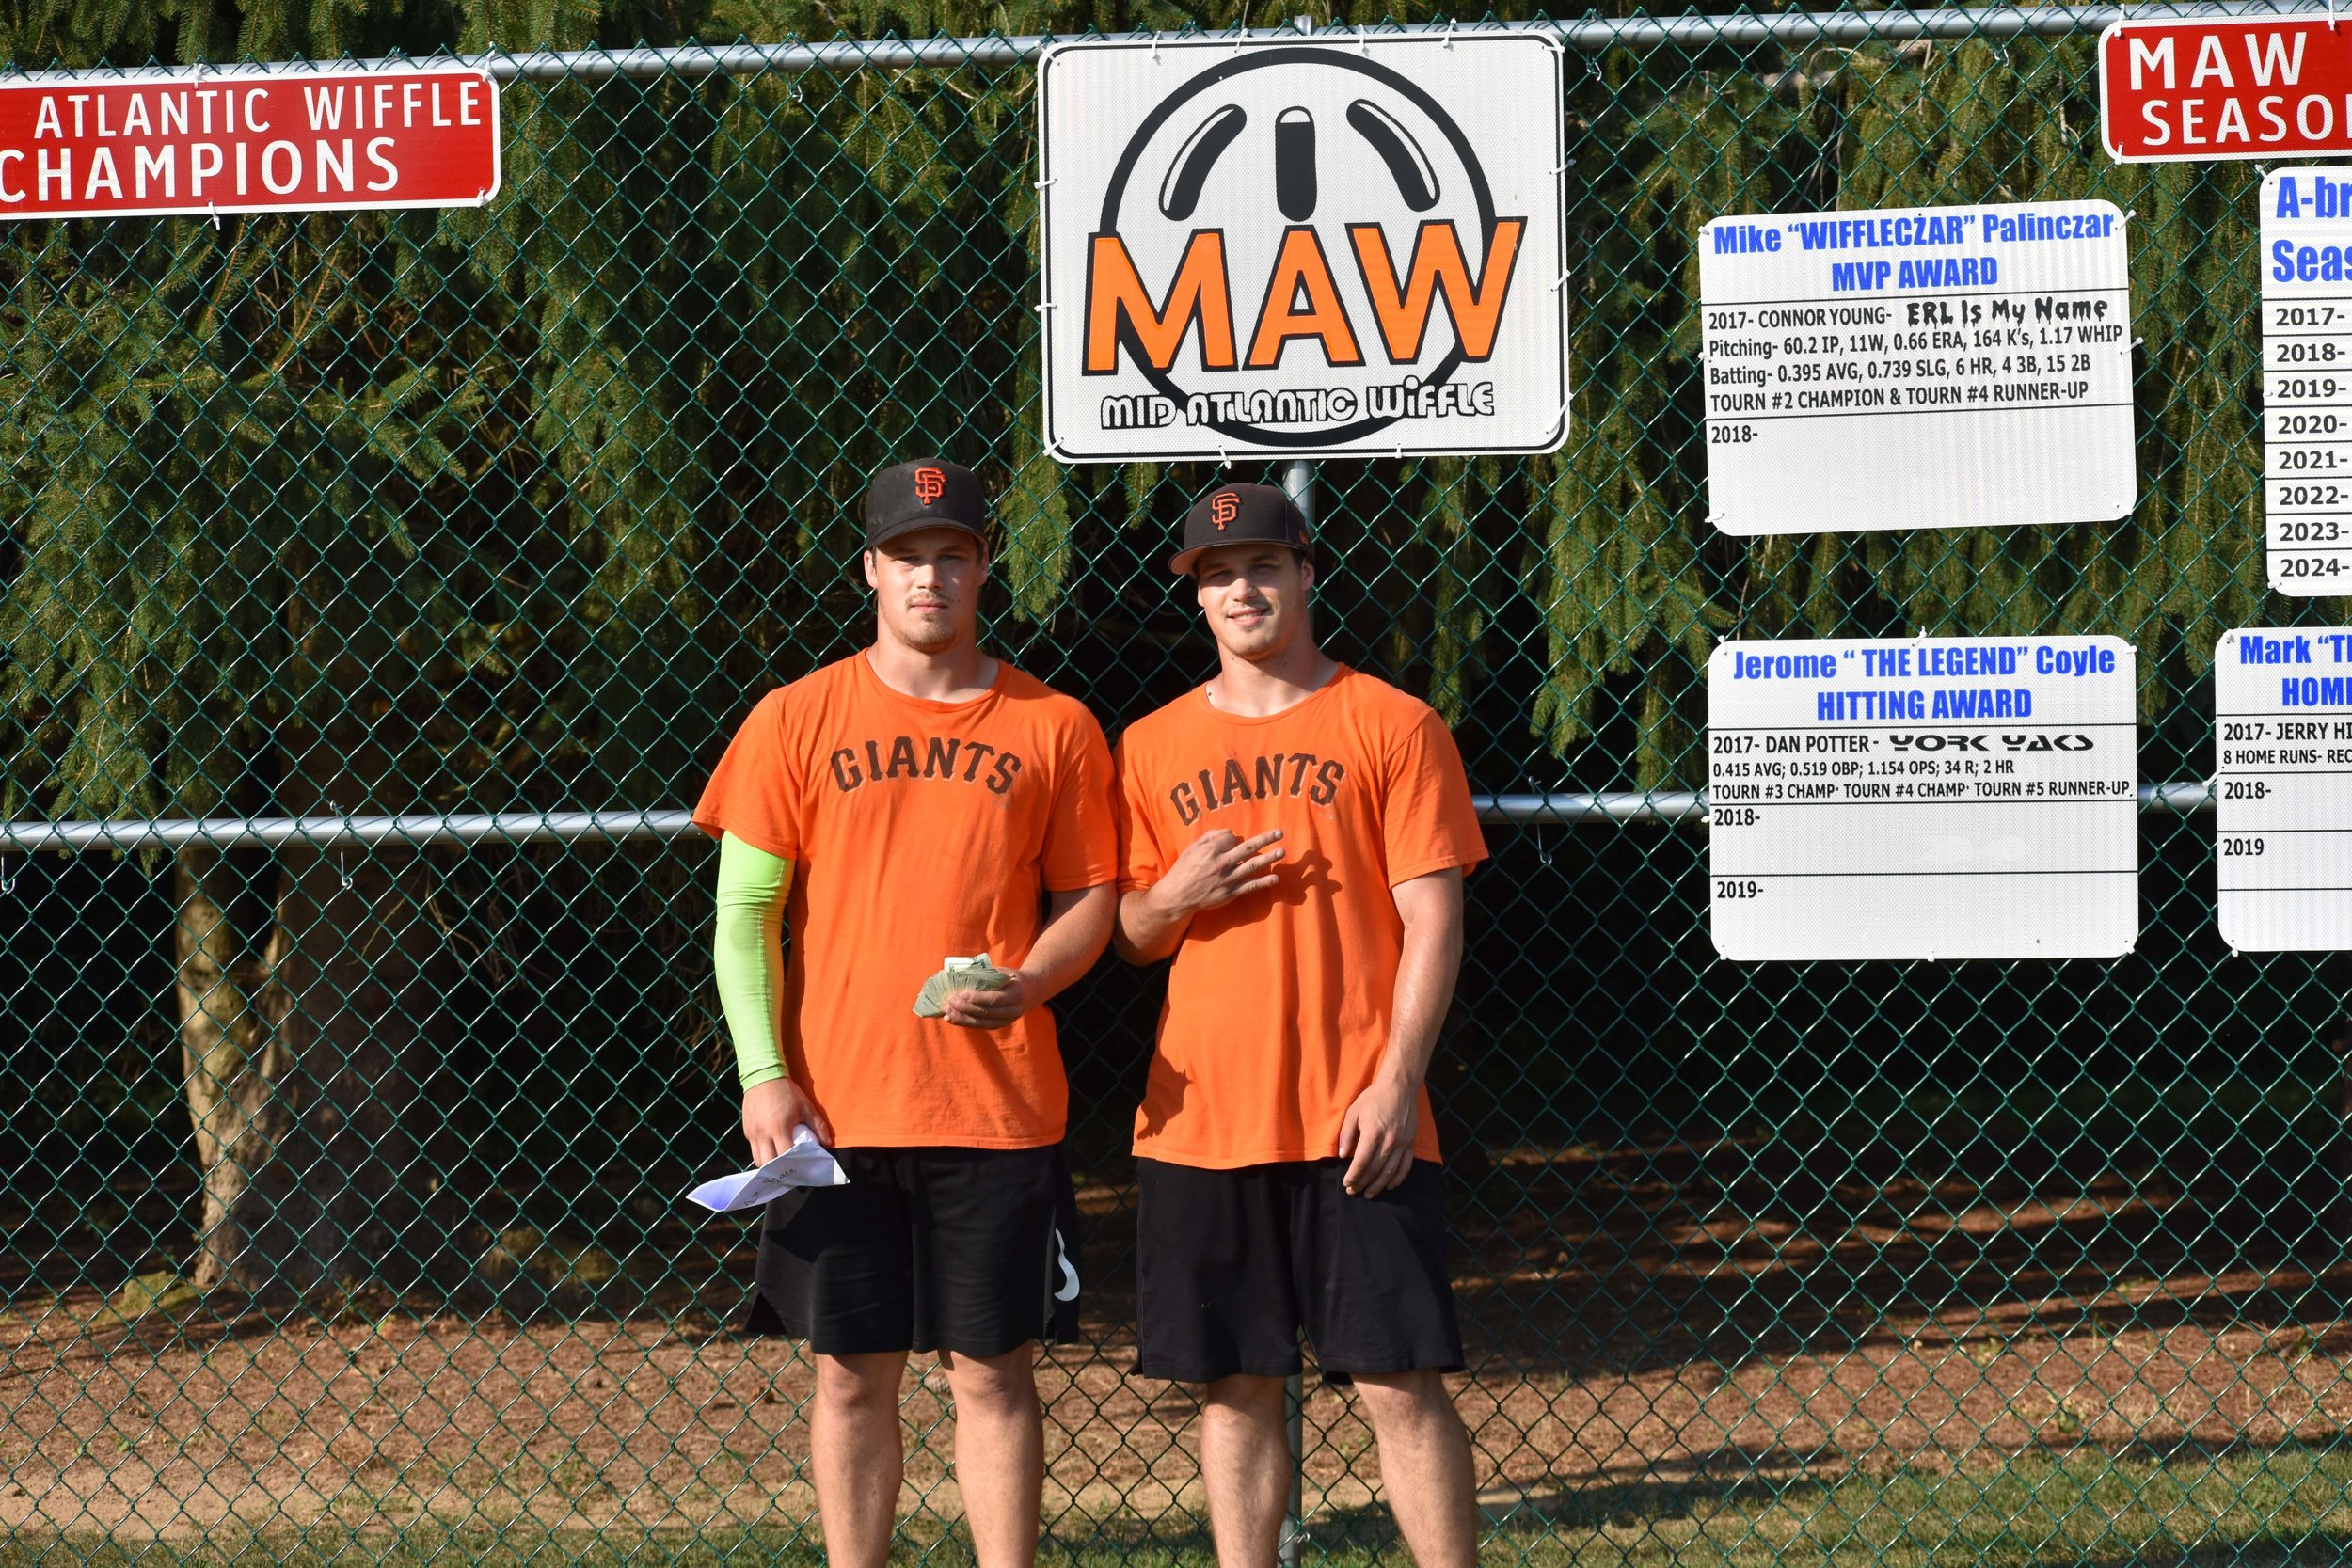 The Giants (Ryan & Tim McElrath) went a perfect 6-0 at  Wiffle Bash  to win the tournament title.